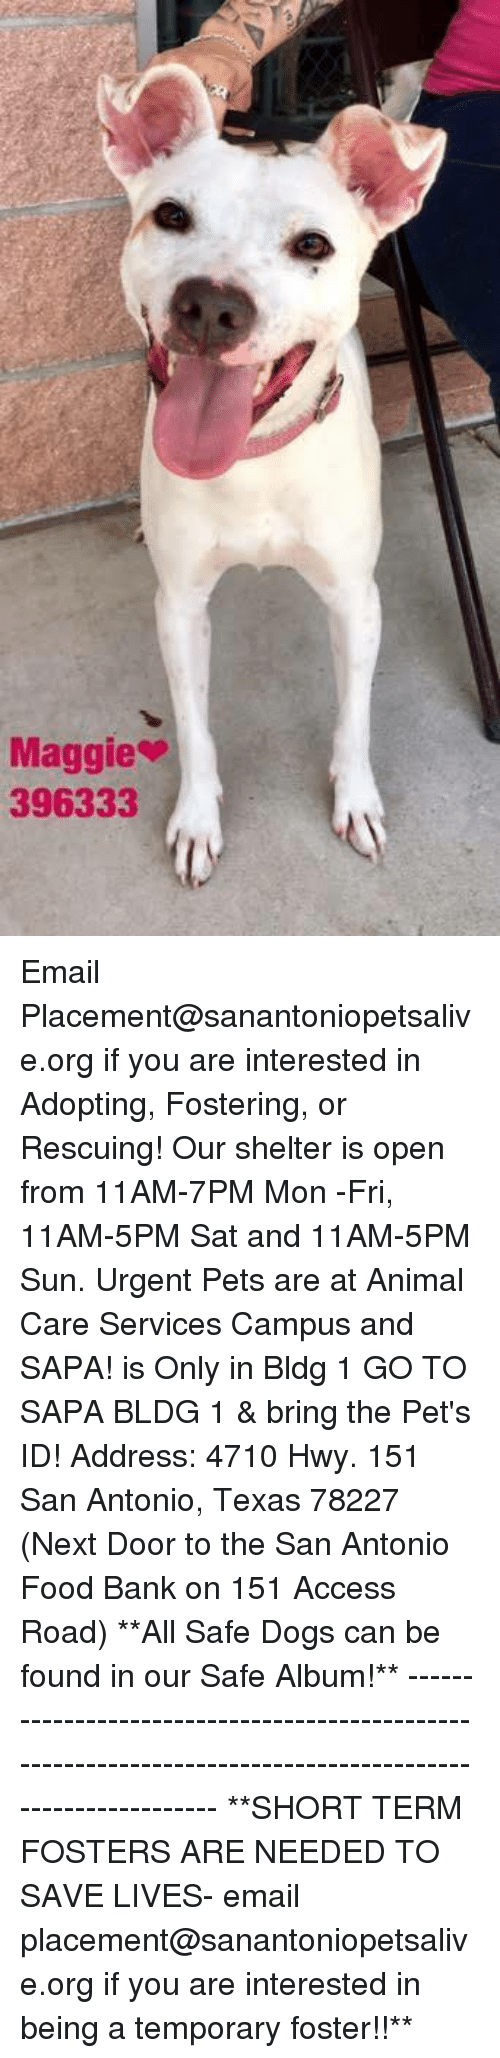 Dogs, Food, and Memes: Maggie  396333 Email Placement@sanantoniopetsalive.org if you are interested in Adopting, Fostering, or Rescuing!  Our shelter is open from 11AM-7PM Mon -Fri, 11AM-5PM Sat and 11AM-5PM Sun.  Urgent Pets are at Animal Care Services Campus and SAPA! is Only in Bldg 1 GO TO SAPA BLDG 1 & bring the Pet's ID! Address: 4710 Hwy. 151 San Antonio, Texas 78227 (Next Door to the San Antonio Food Bank on 151 Access Road)  **All Safe Dogs can be found in our Safe Album!** ---------------------------------------------------------------------------------------------------------- **SHORT TERM FOSTERS ARE NEEDED TO SAVE LIVES- email placement@sanantoniopetsalive.org if you are interested in being a temporary foster!!**